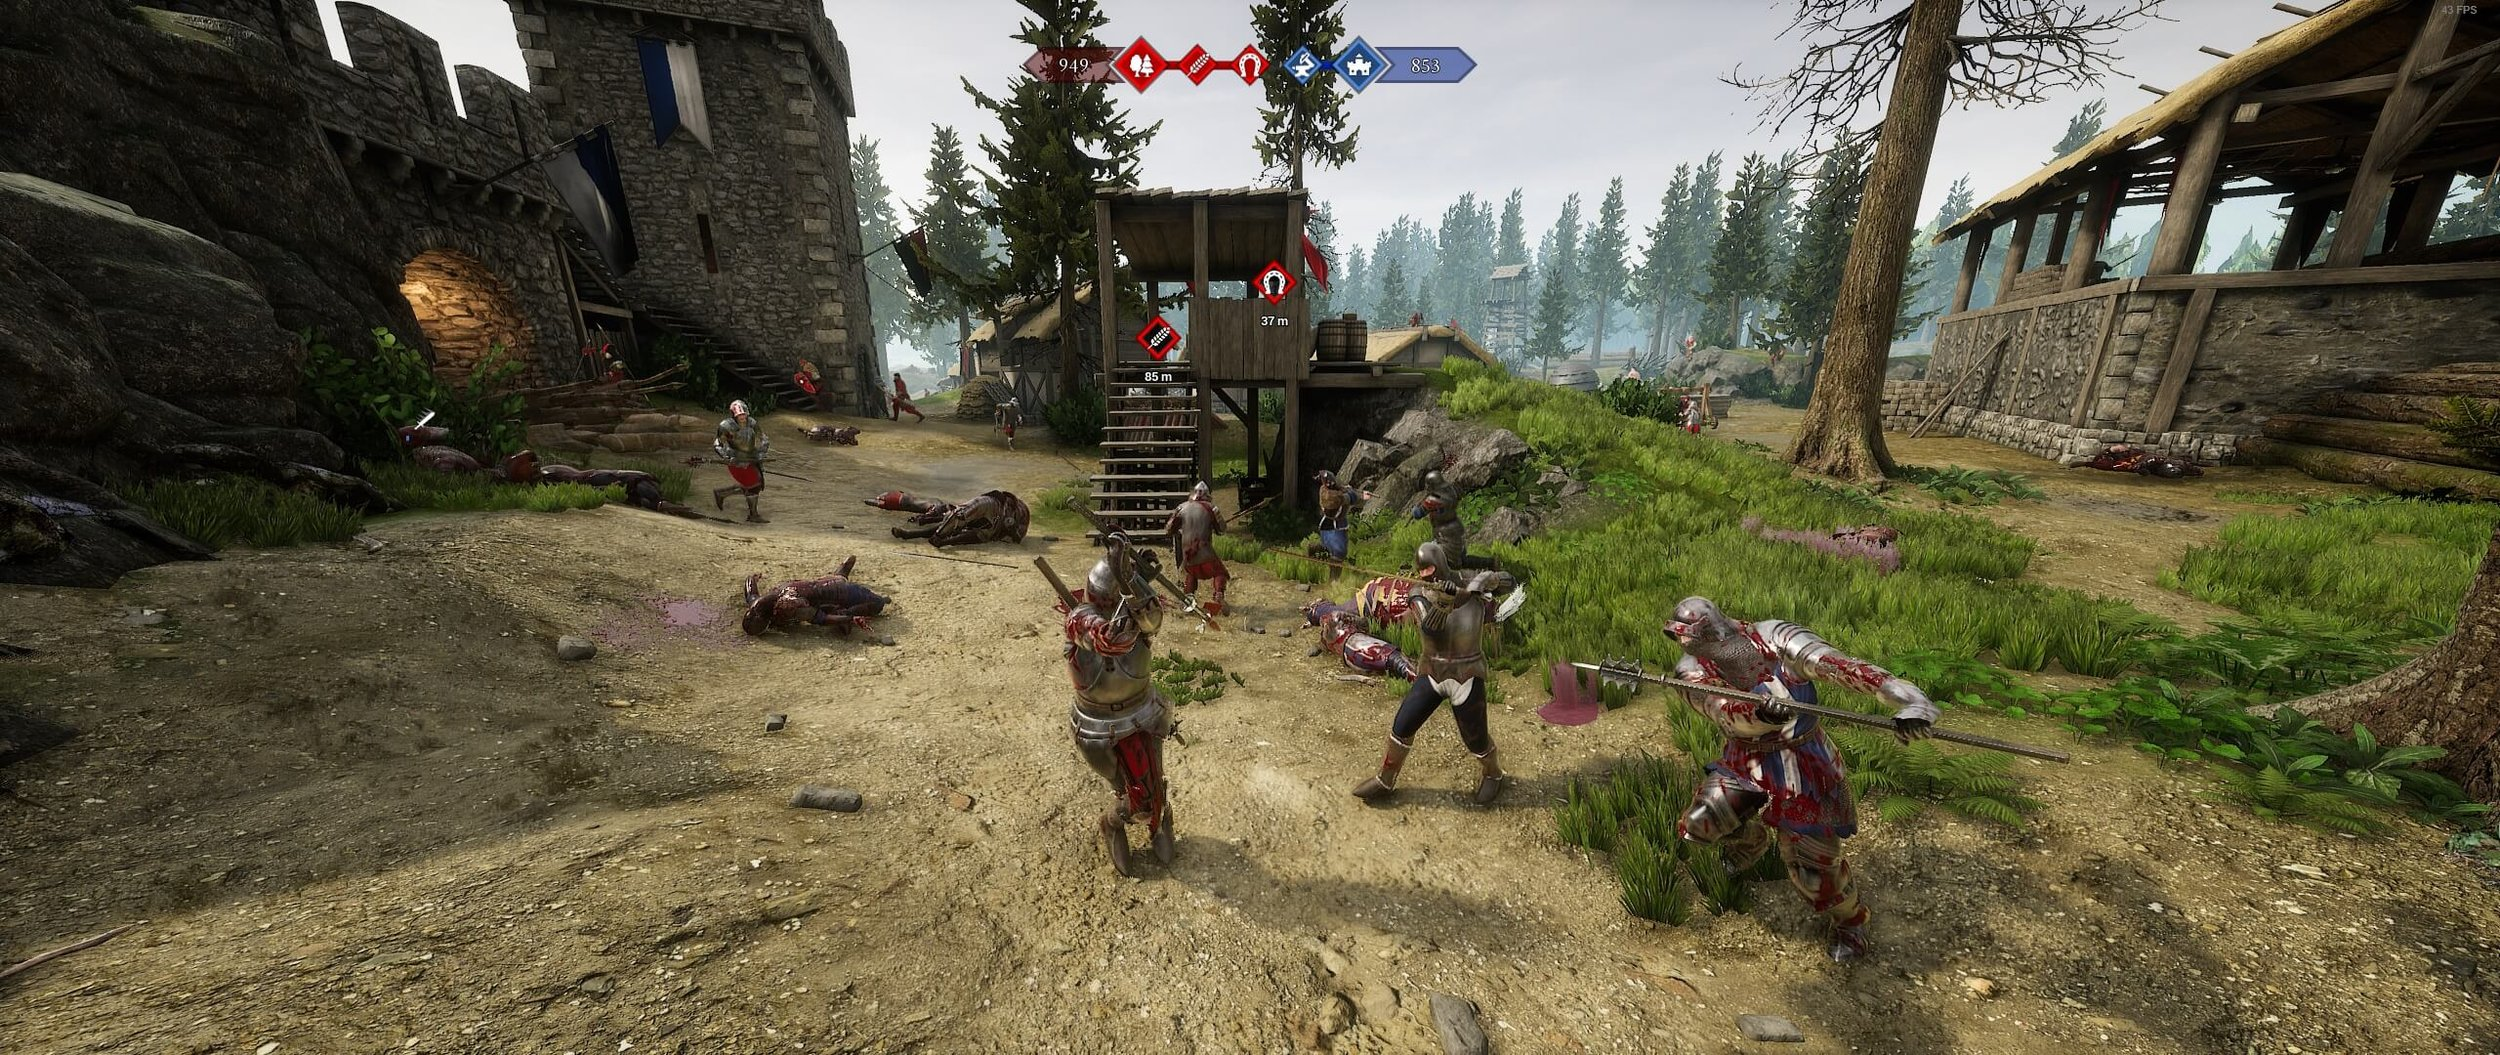 How to increase FPS in Mordhau: GameUserSettings and Video